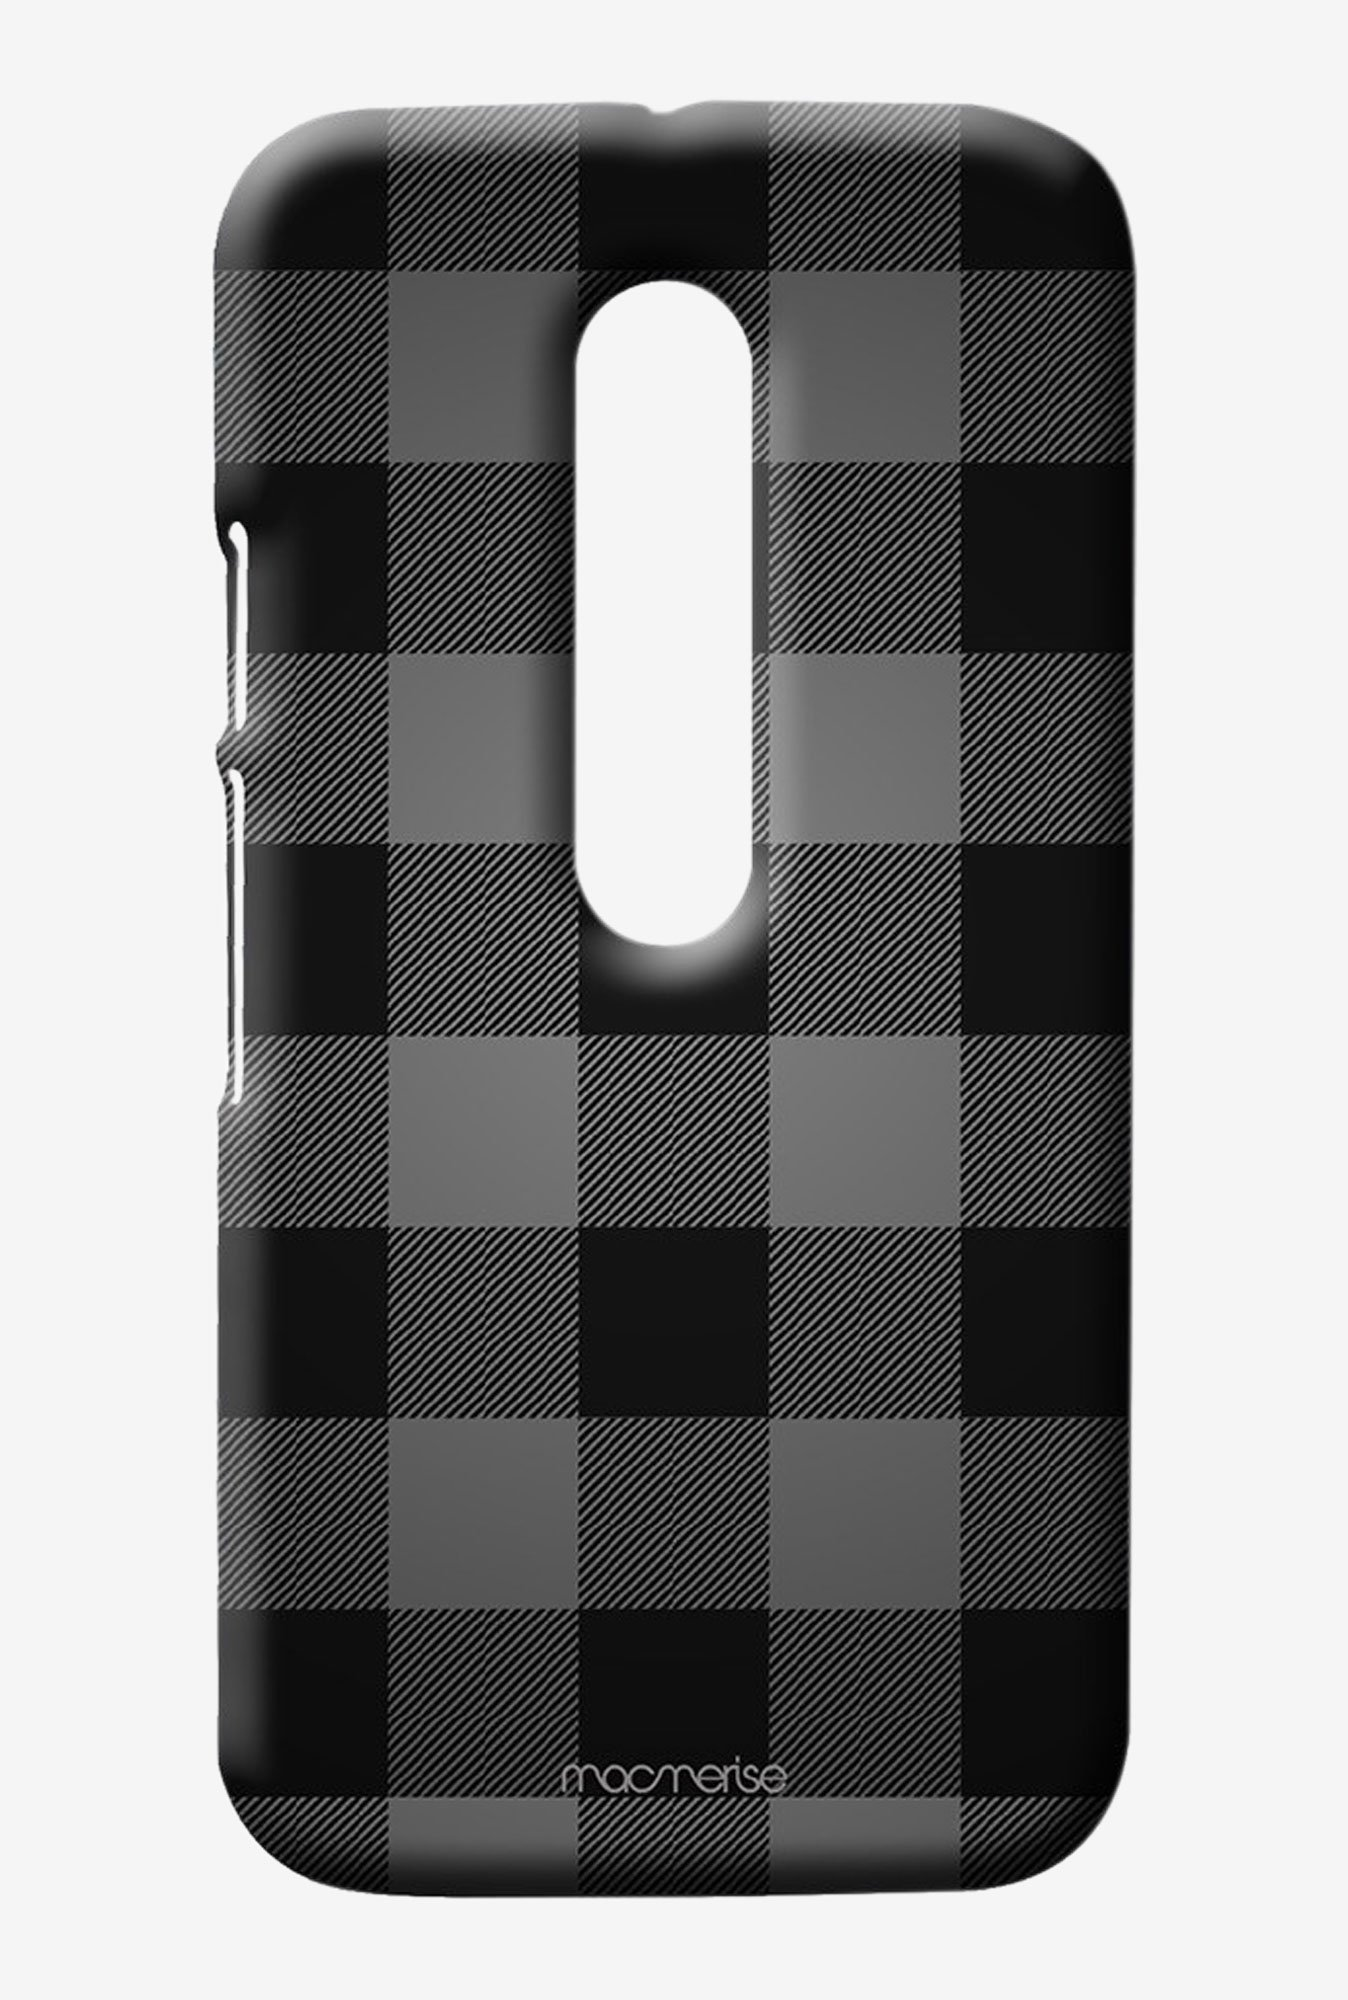 Macmerise Checkmate Black Sublime Case for Moto G3